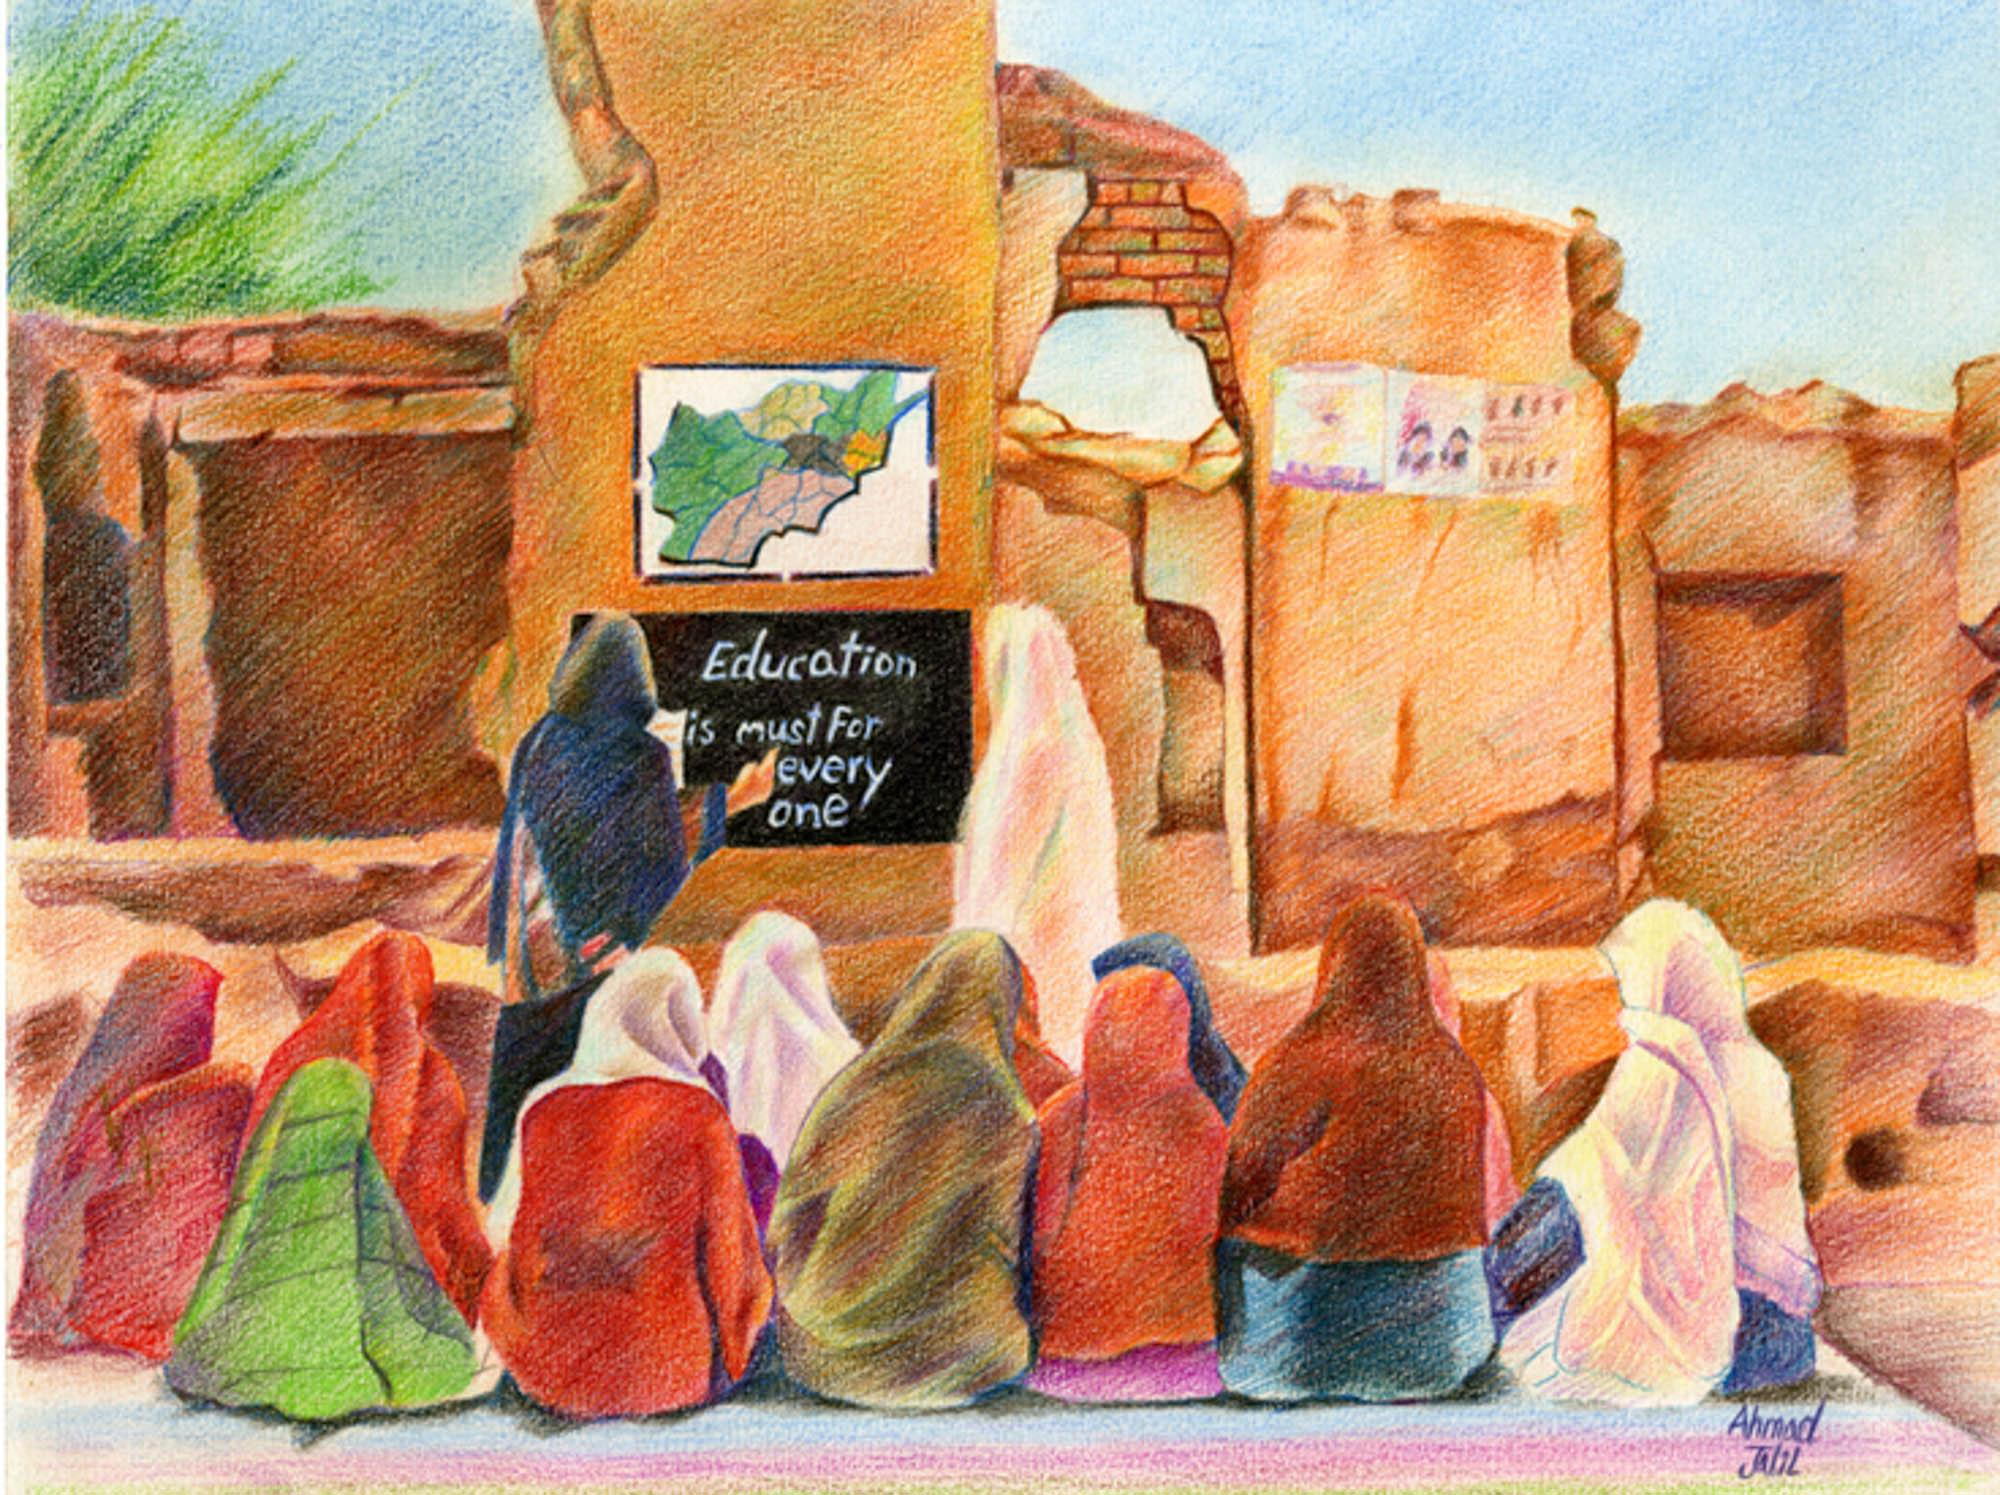 Education After War, Ahmad Jalil, age 15 Quetta, Pakistan (Afghan national) Mosawir Art Academy Teacher: Nawroz Mosawir, 2013 River of Words Finalist